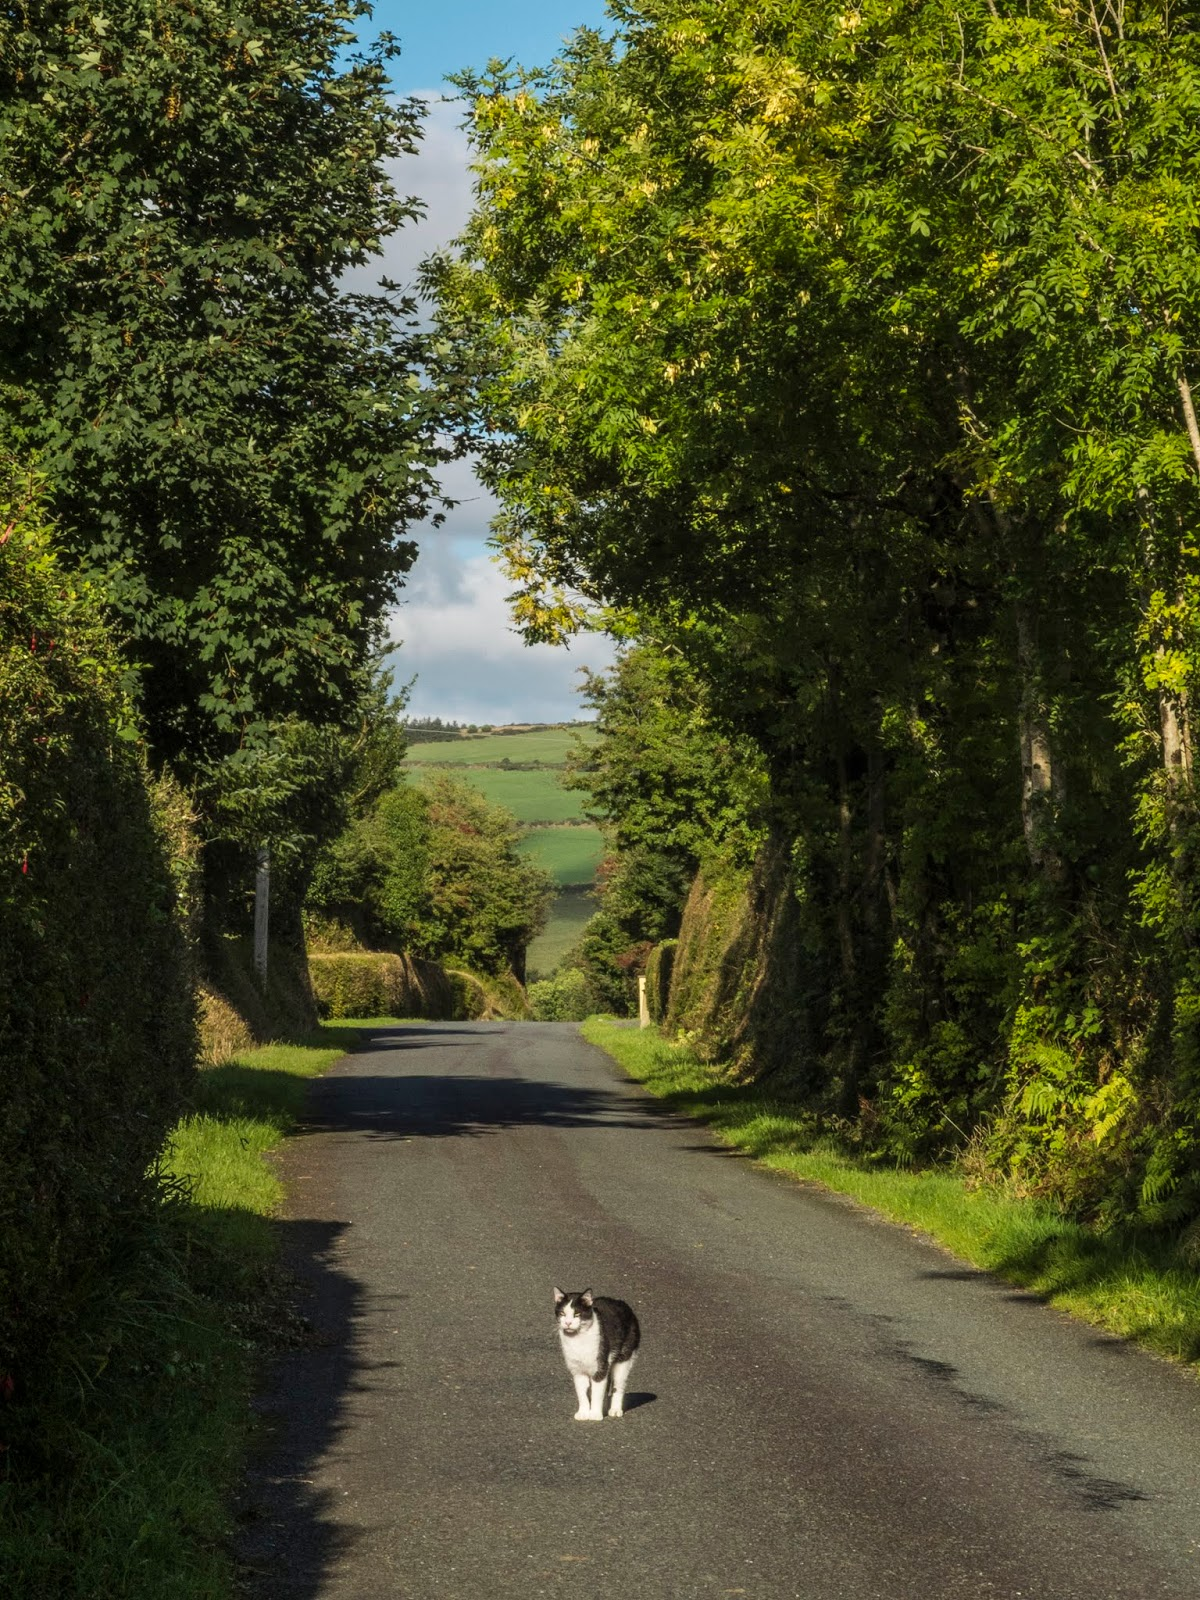 A black and white cat standing in the middle of a country road with tree tunnels in the sunlight.